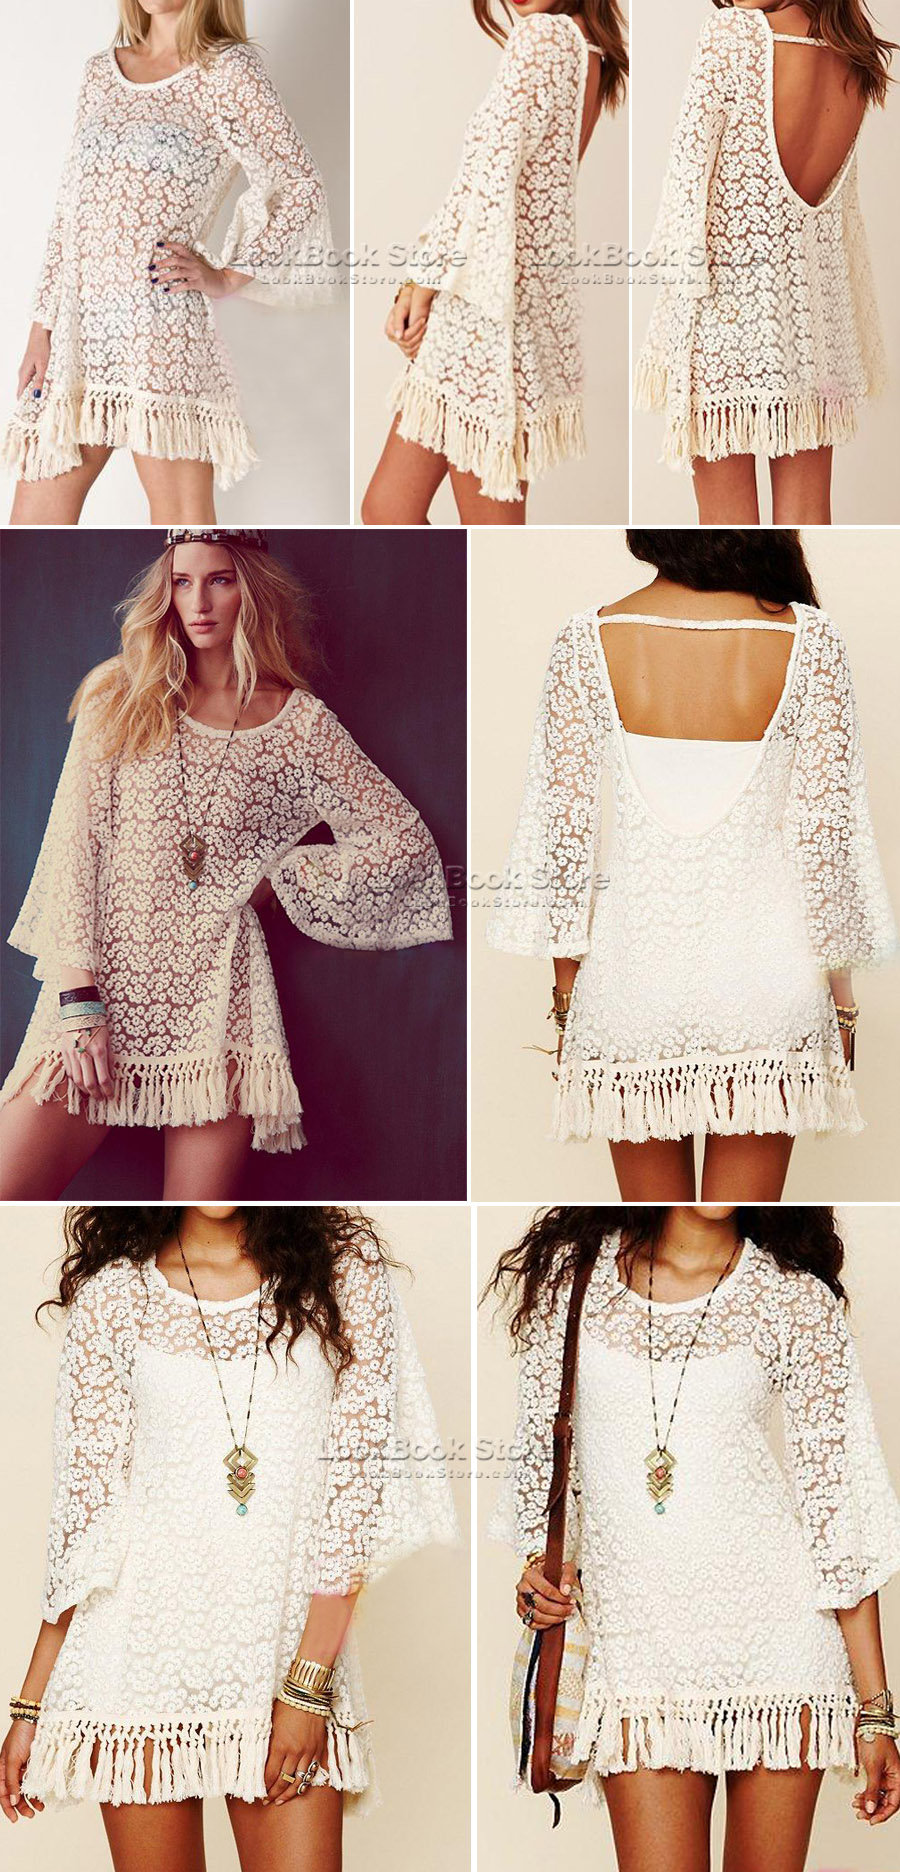 Lookbookstore Chic Crop Sleeve White Embroidery Floral Lace Fring Hem Crochet Mini Short Dress @lookbookstore #lookbookstore